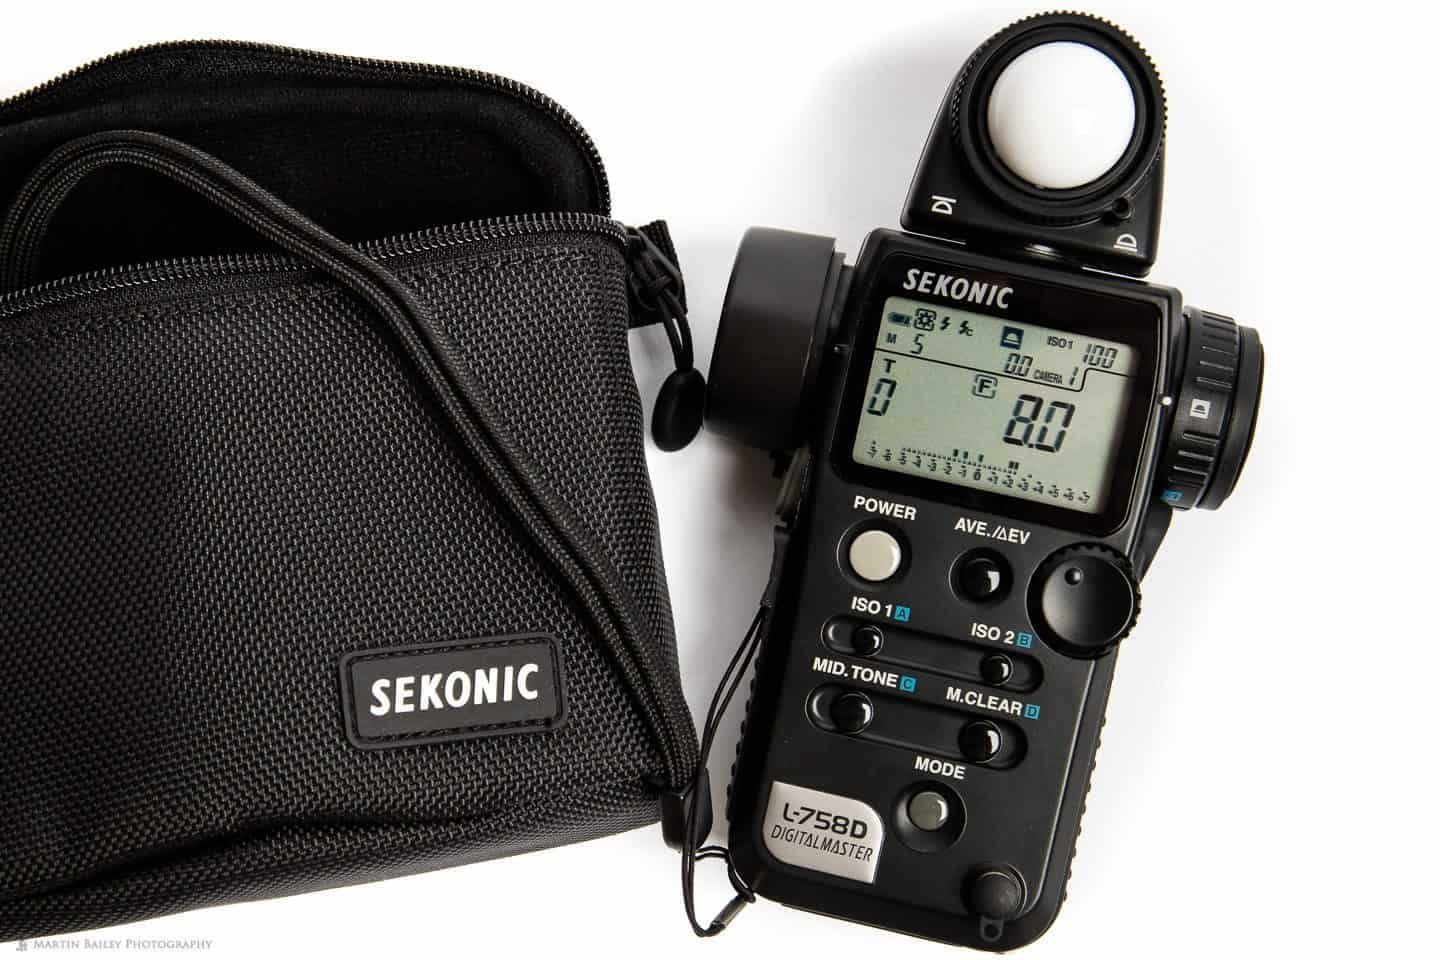 SEKONIC L-758 CINE DIGITALMASTER LIGHT METER | Panny Hire